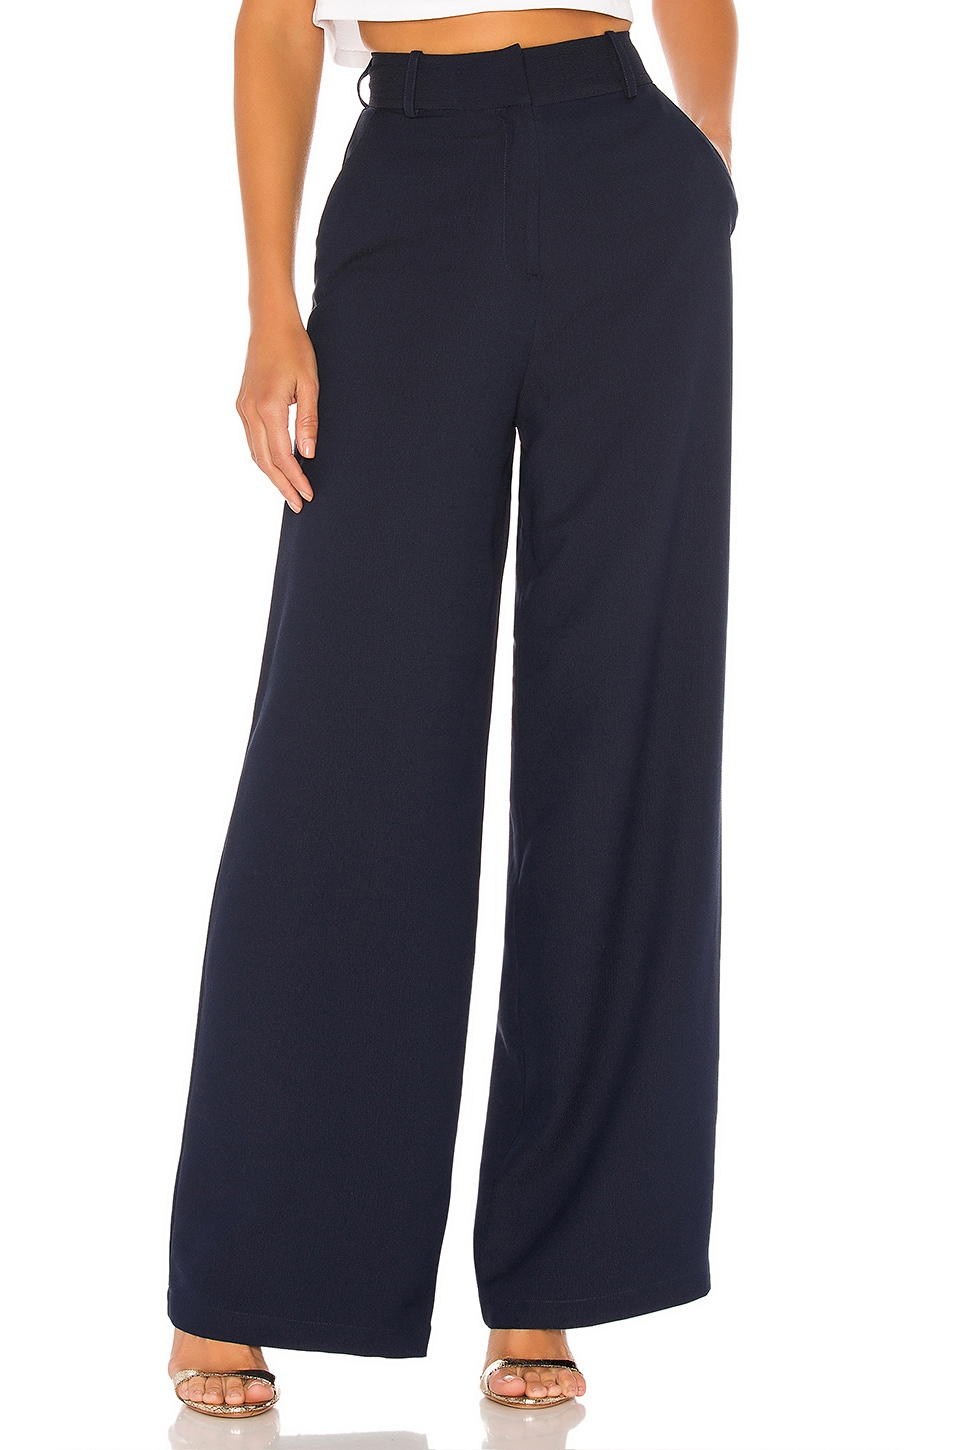 House of Harlow 1960 x REVOLVE Safir Pant in Navy